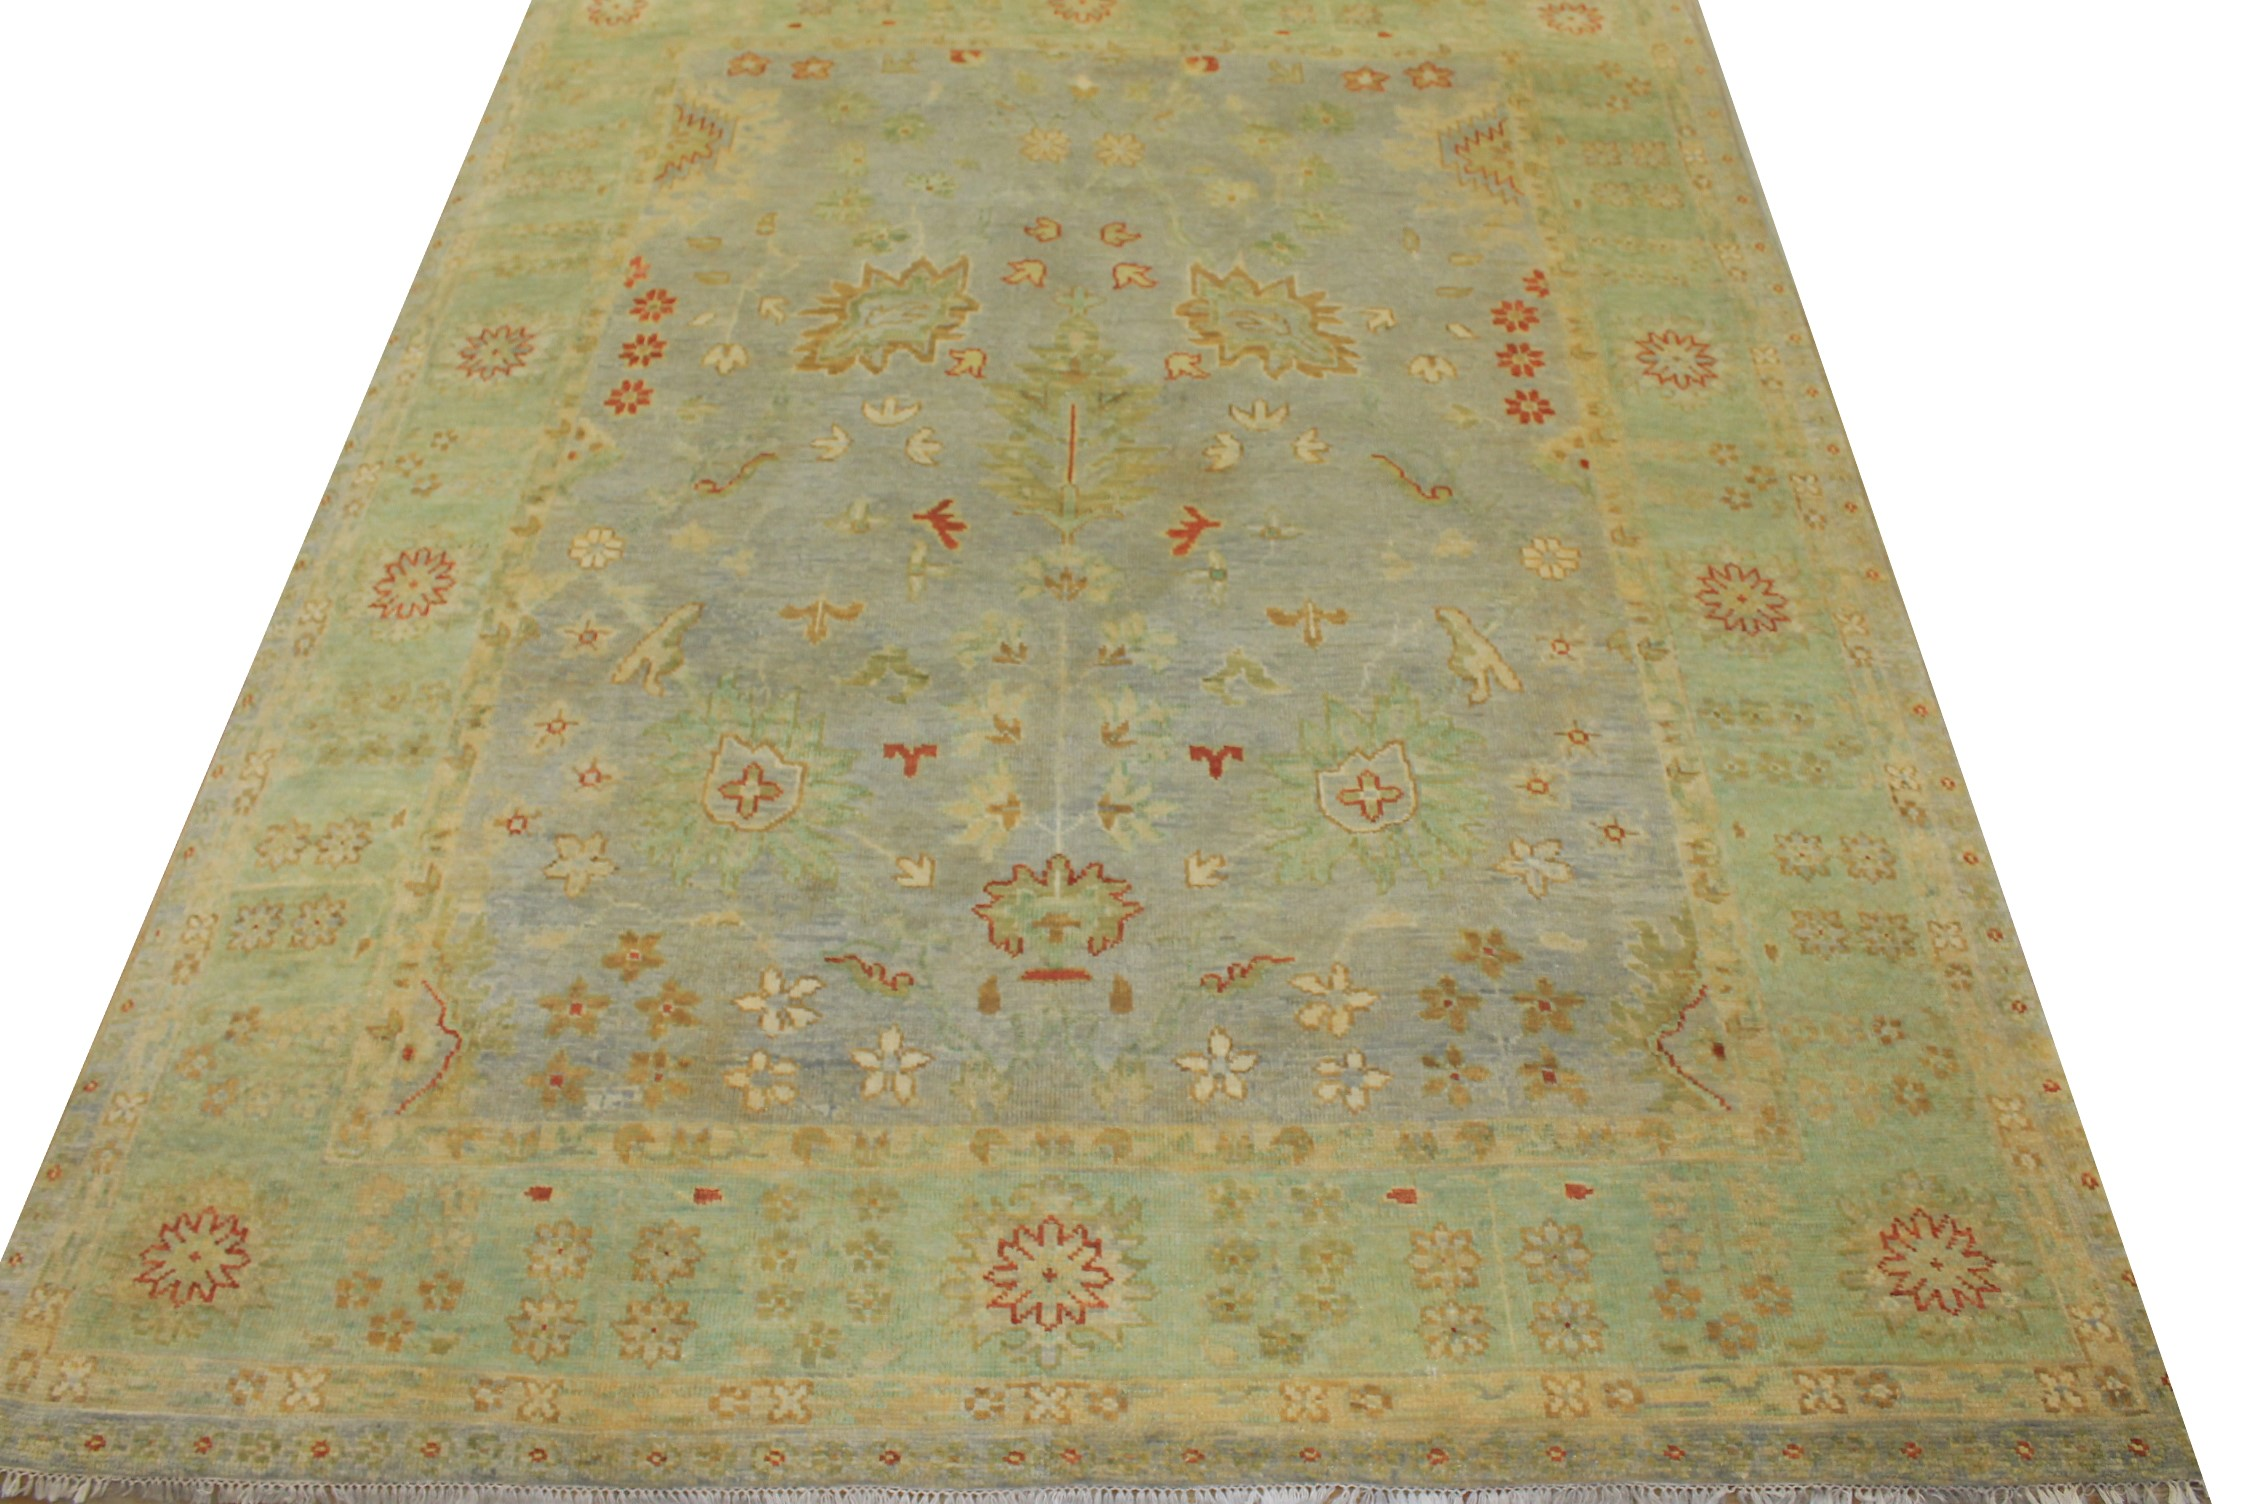 8x10 Oushak Hand Knotted Wool Area Rug - MR18861